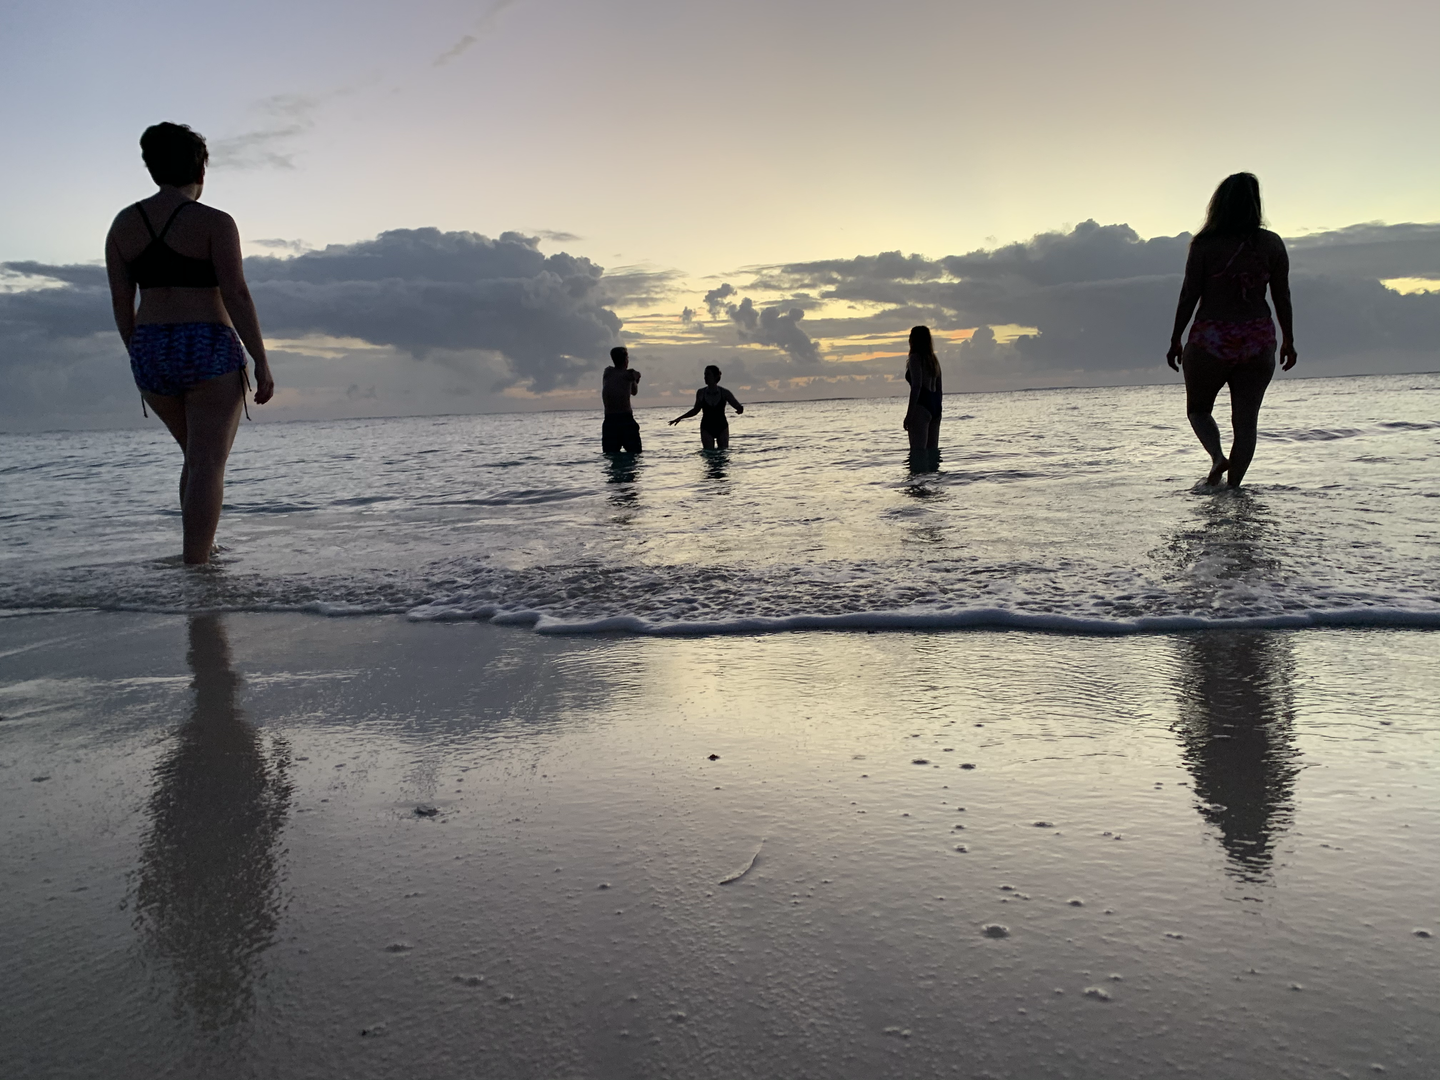 Rouge band of yogis take to the beach for a sunset swim